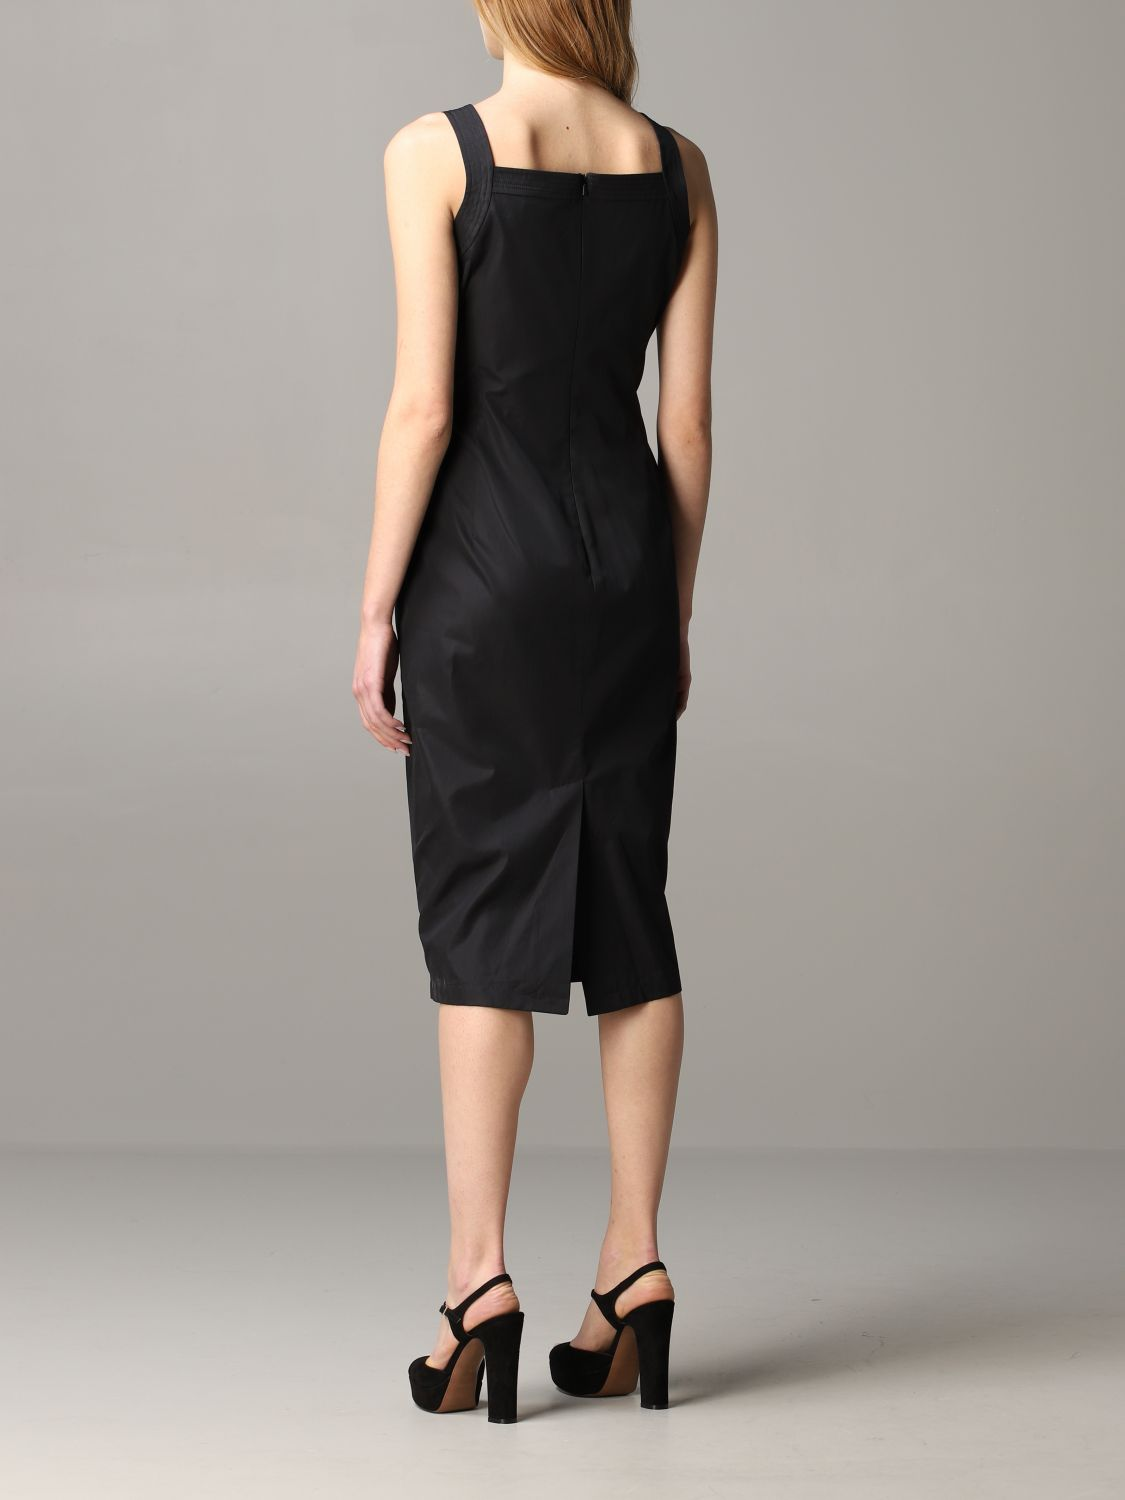 Max Mara draped dress black 2